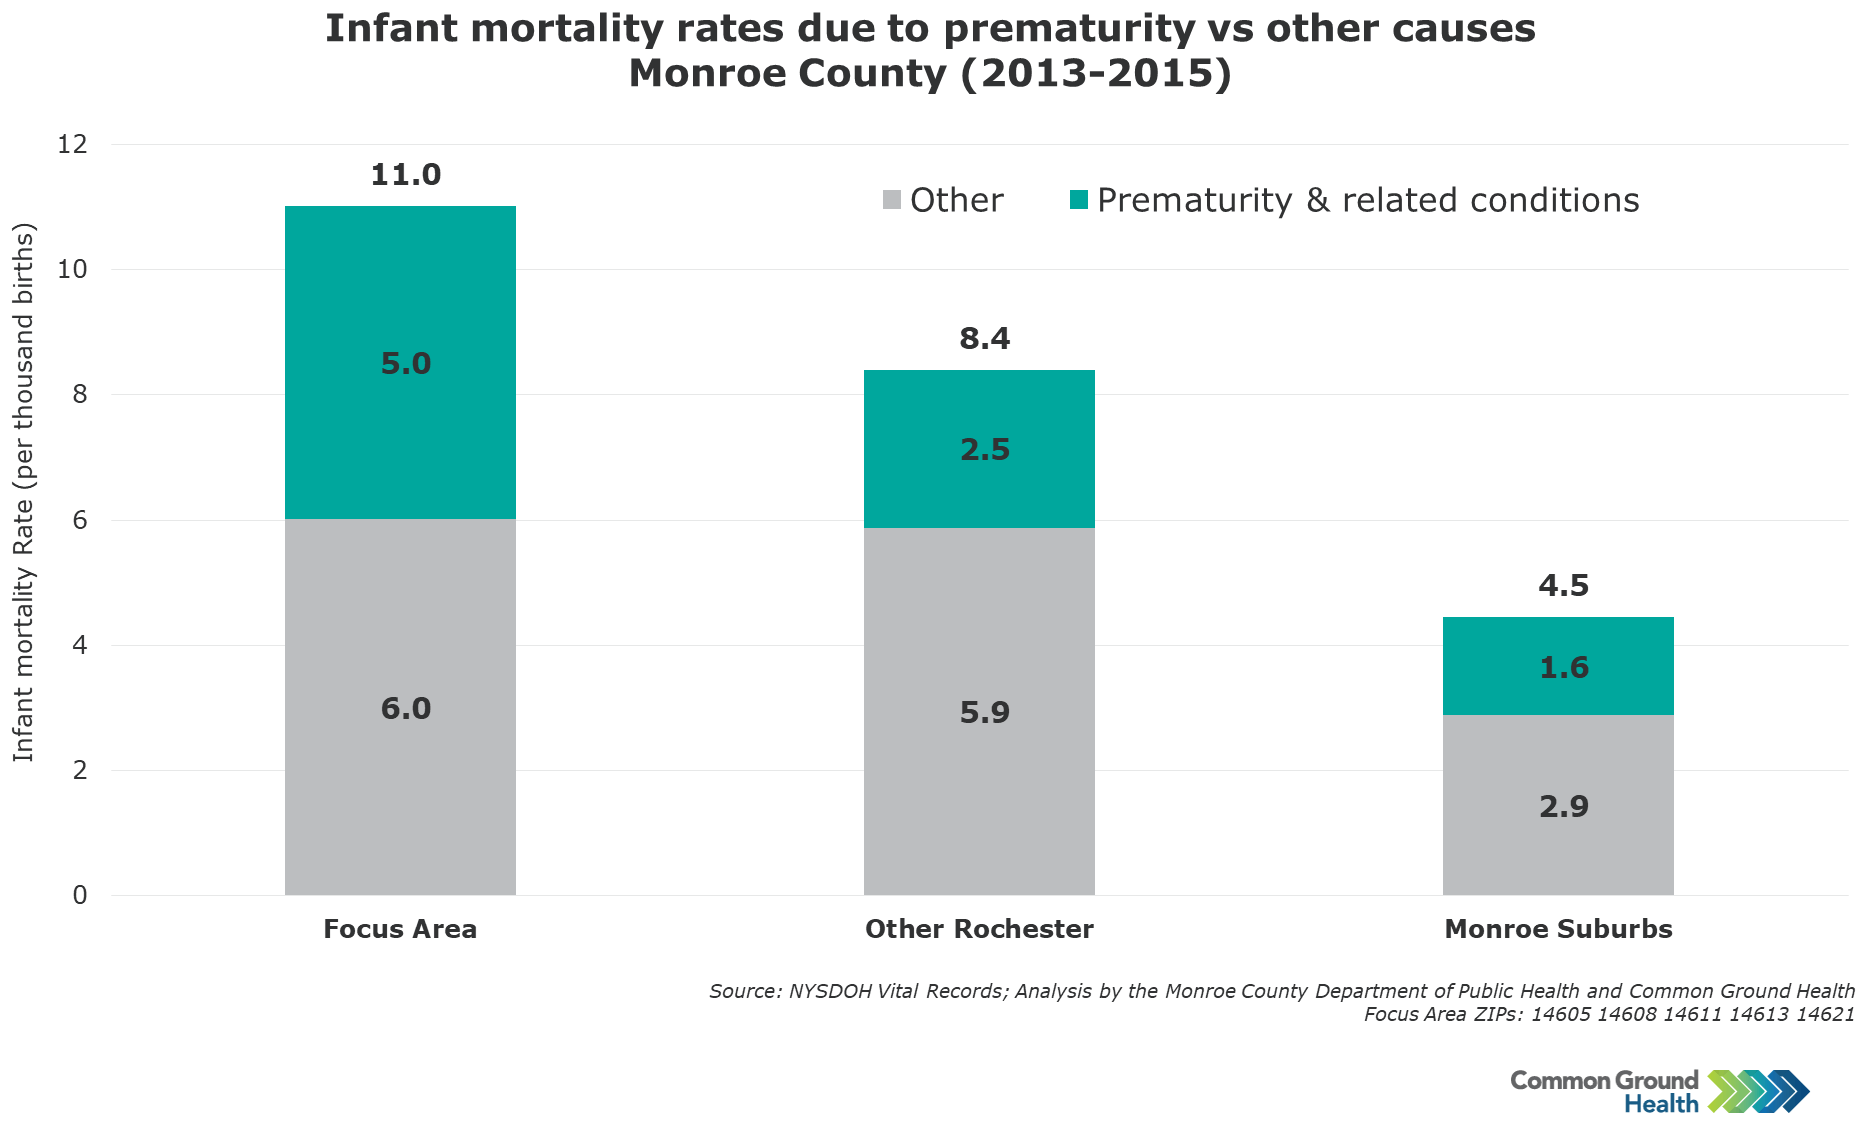 Infant Mortality Rates due to Prematurity vs Other Causes